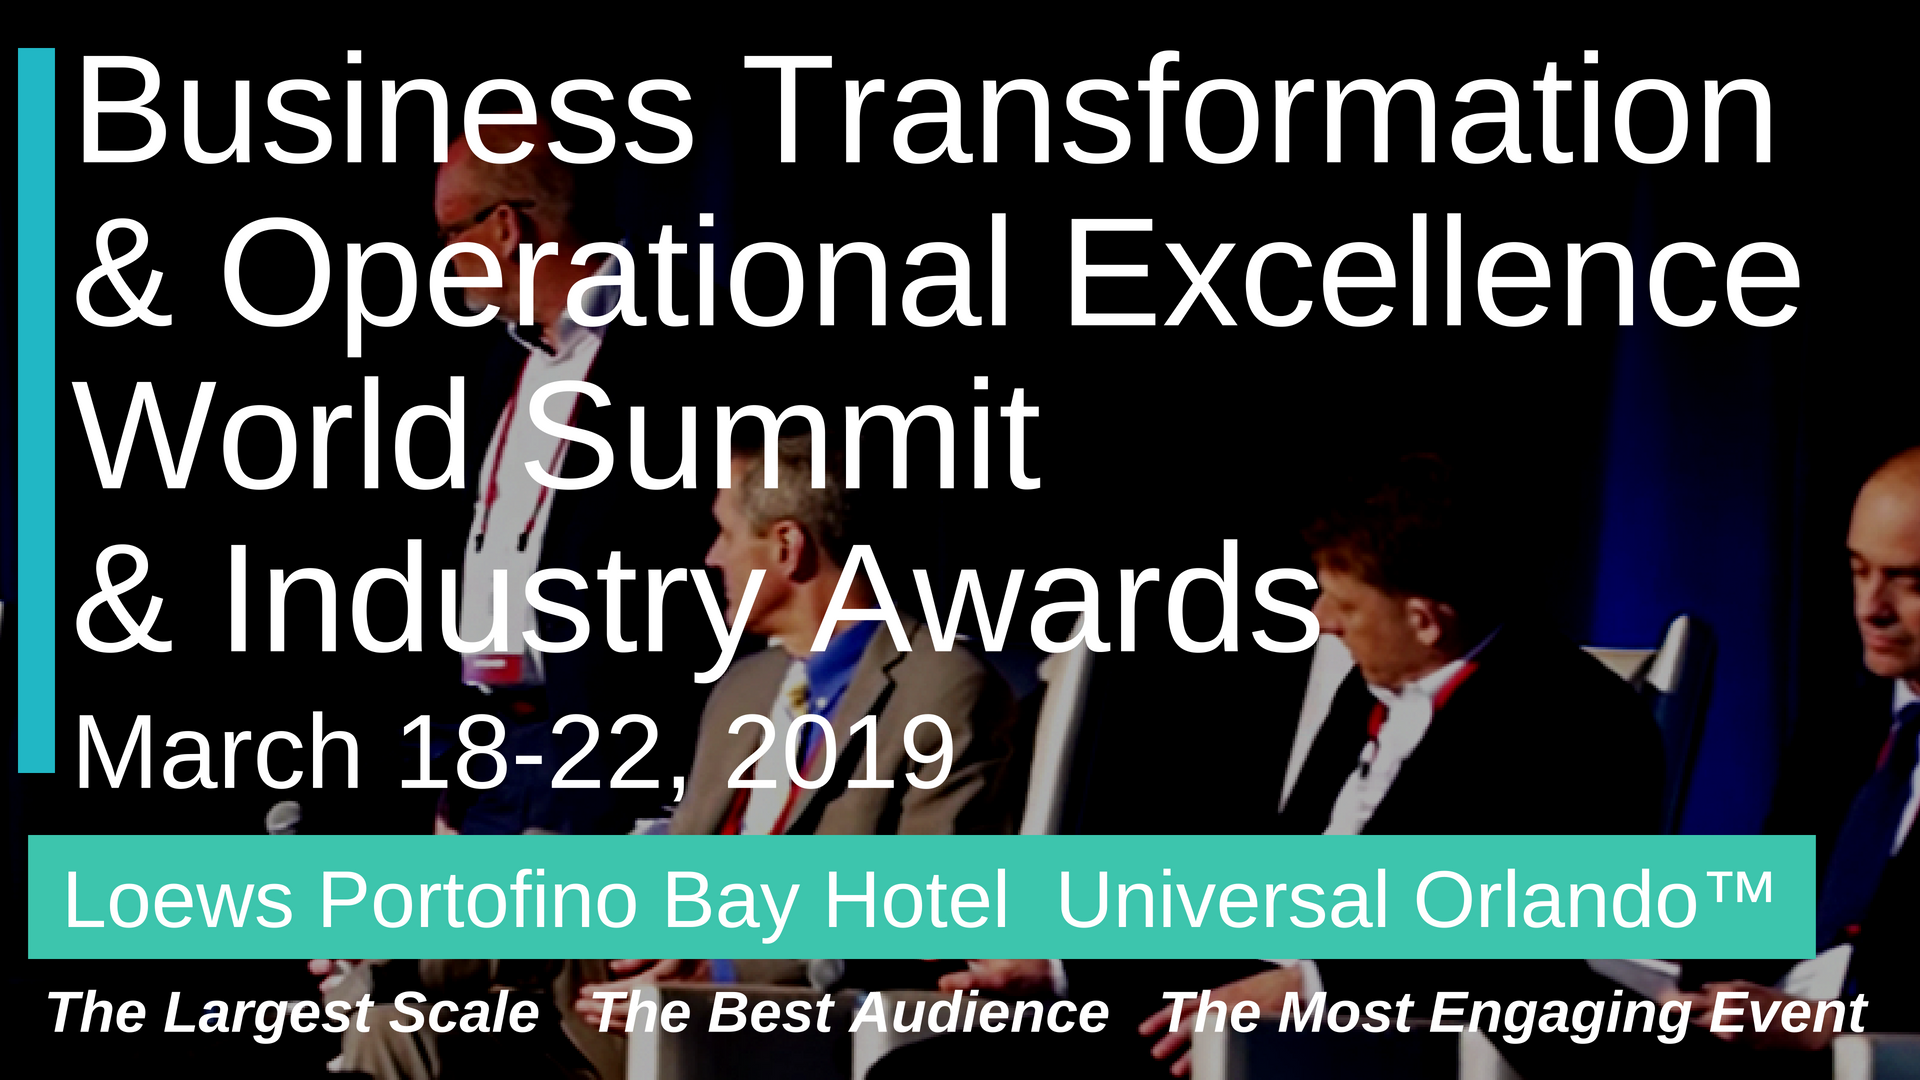 The Largest Leadership-Level Business Transformation & Operational Excellence Event